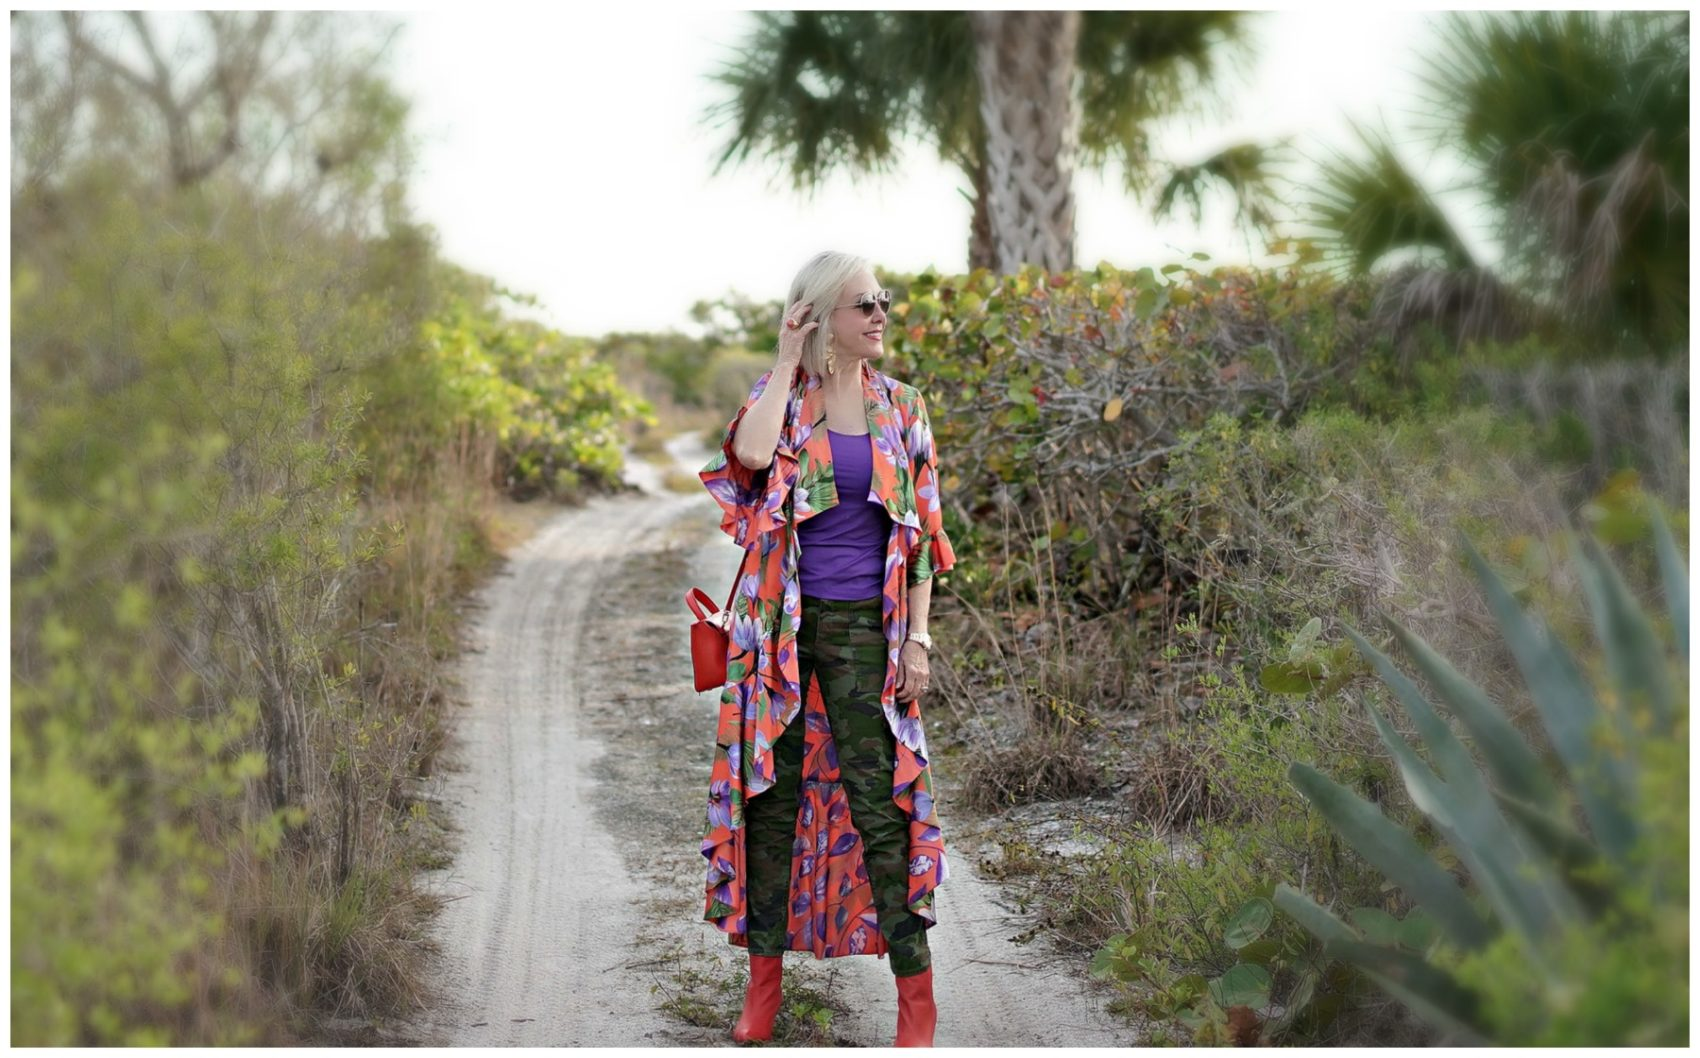 Sheree in alice + olivia kimono walking down a tropical path